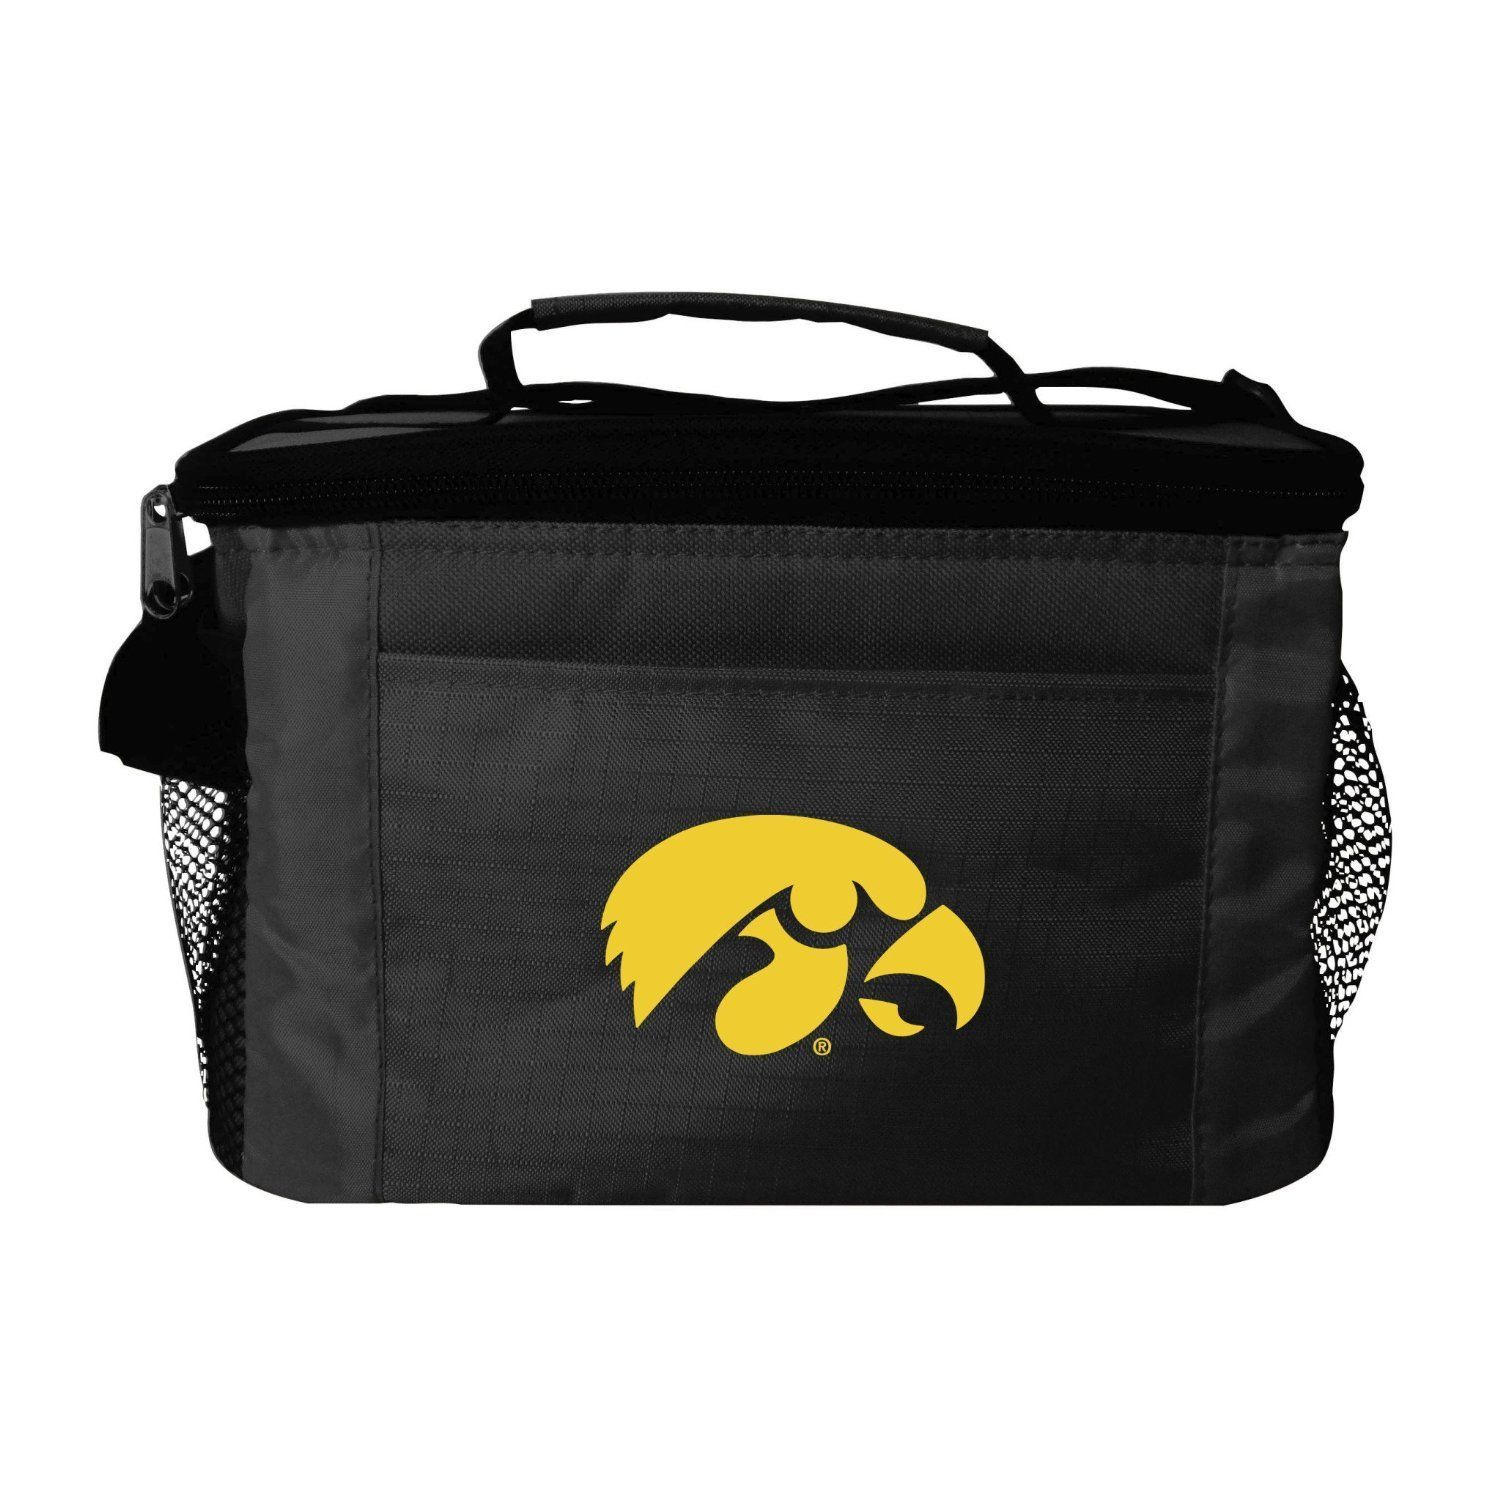 IOWA HAWKEYES LUNCH TOTE 6 PK BEER SODA TEAM LOGO KOOLER BAG NCAA